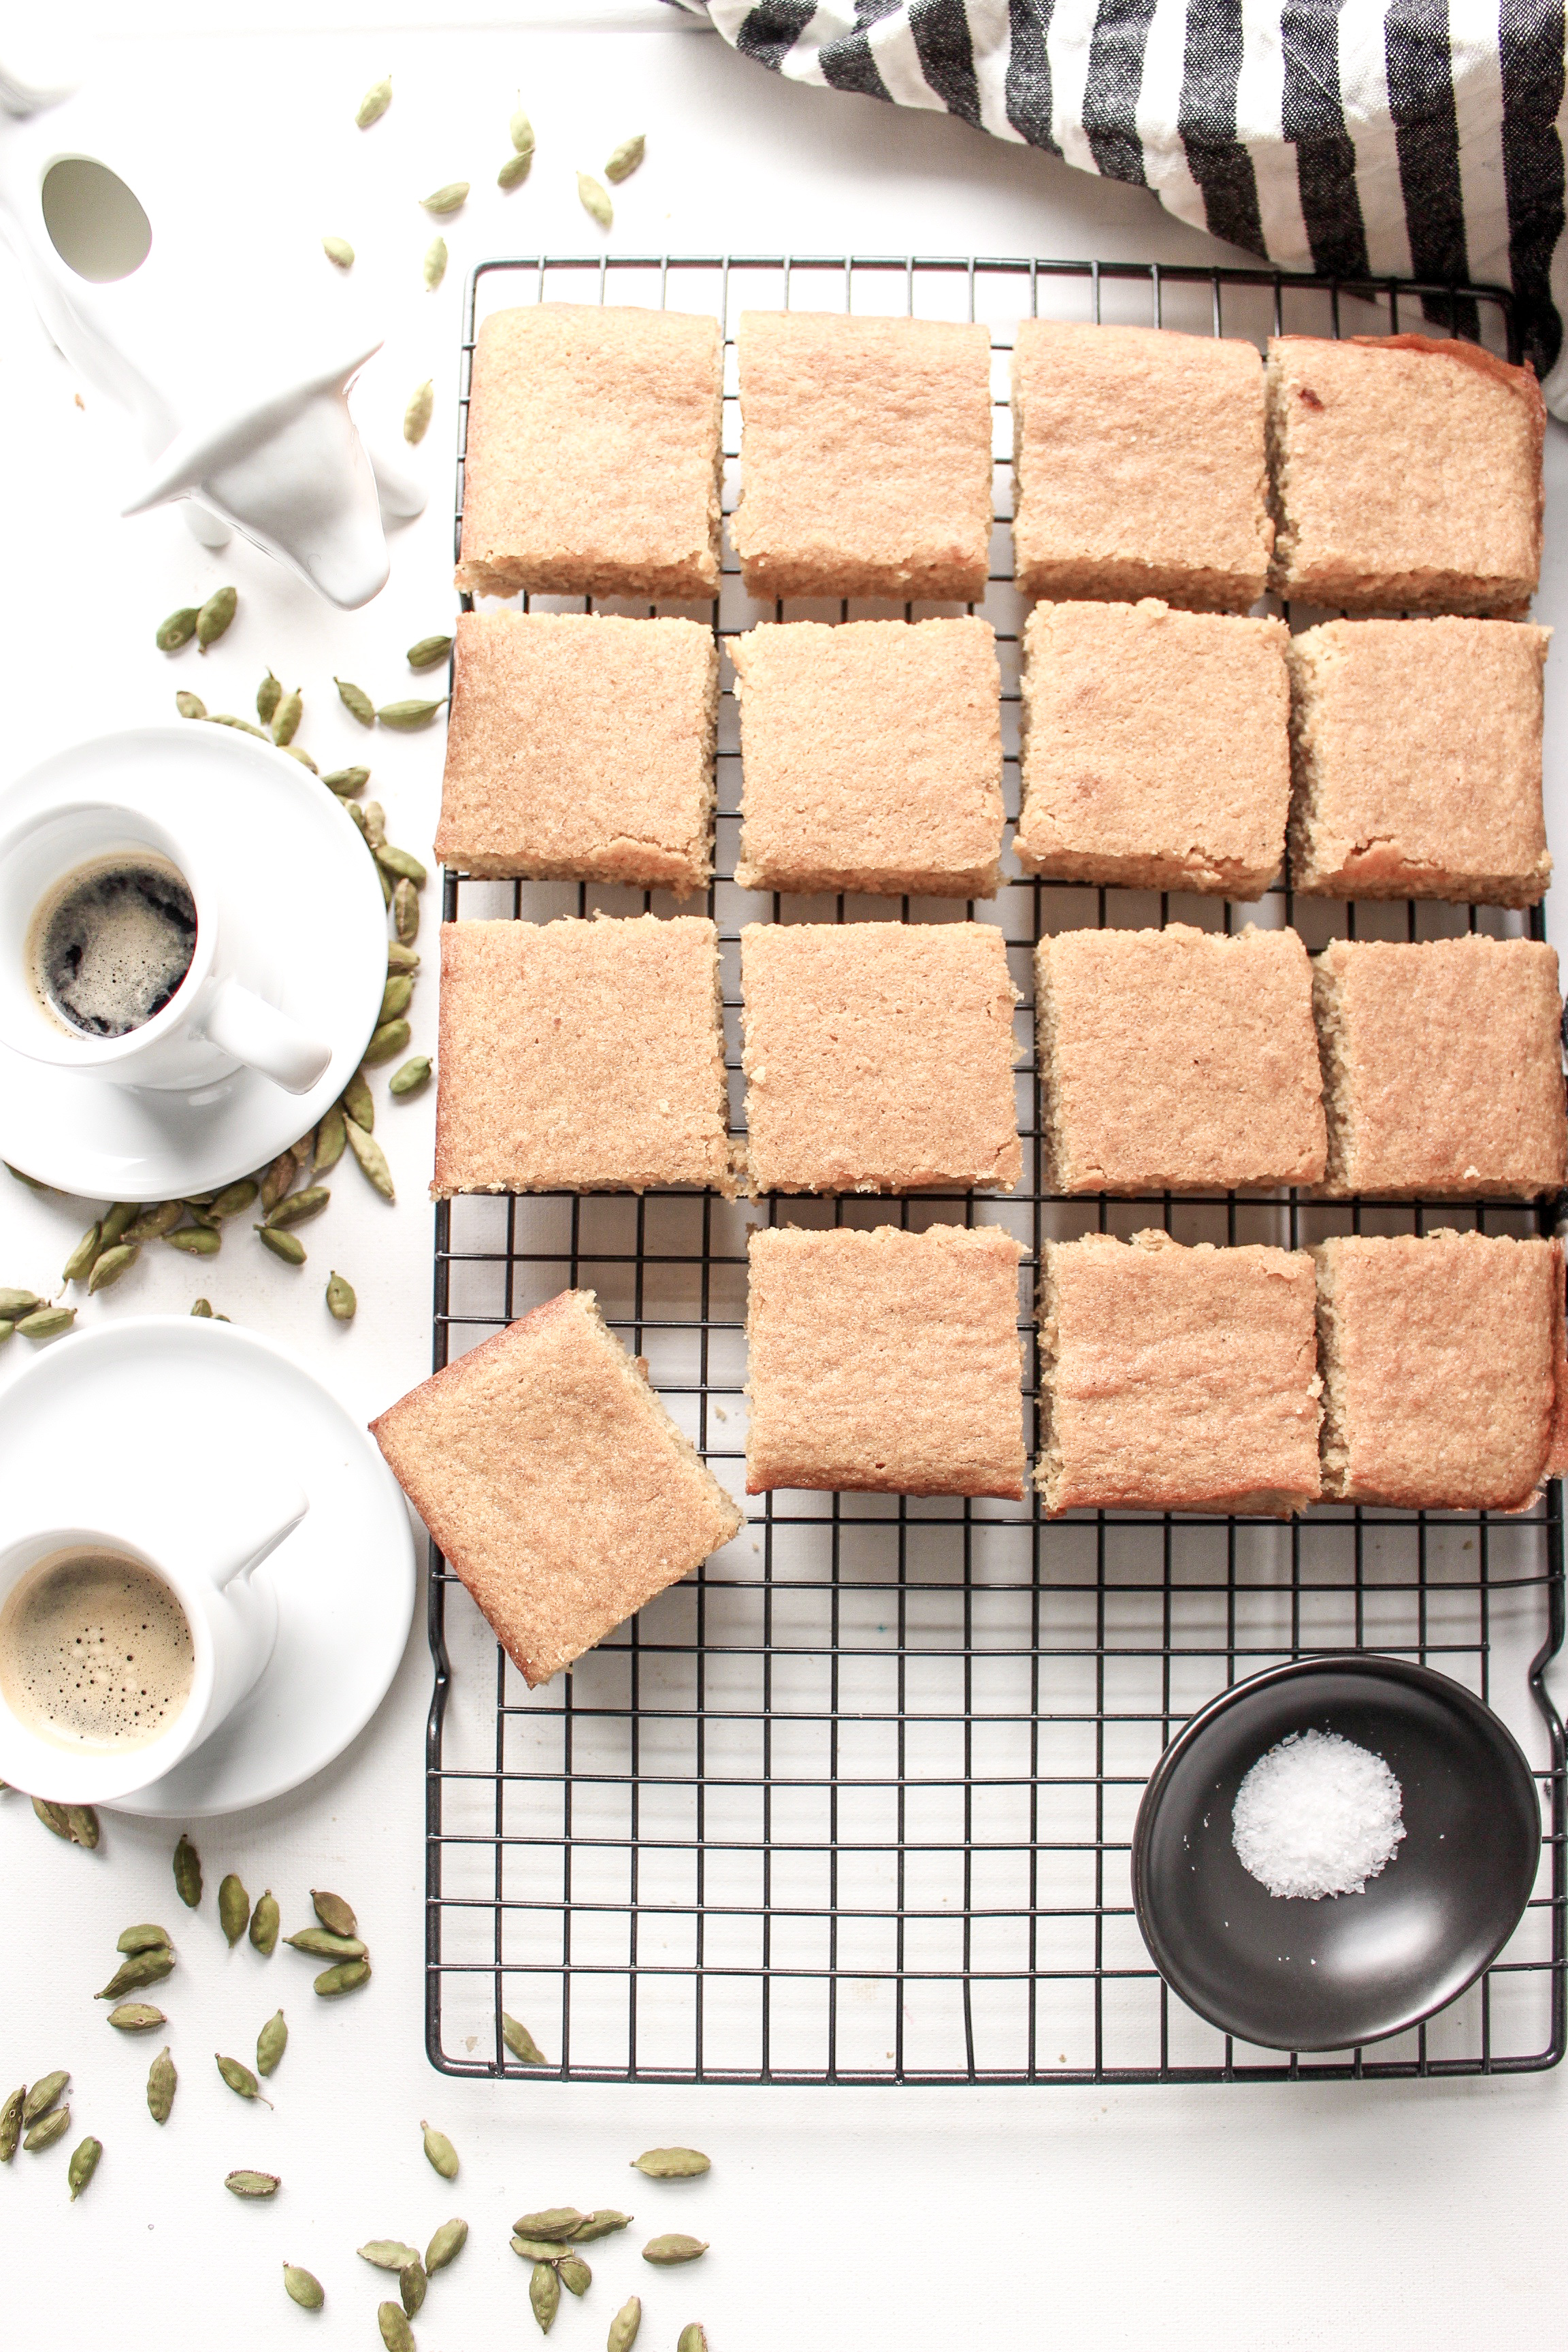 Coffee and cardamom blondies | Me & The Moose. These bar cookies are spiced, sweet, and dense, require one bowl, and are great for a crowd. #meandthemoose #blondies #coffee #cardamom #batchbaking #Christmasbaking #uniquedesserts #easydessertrecipes